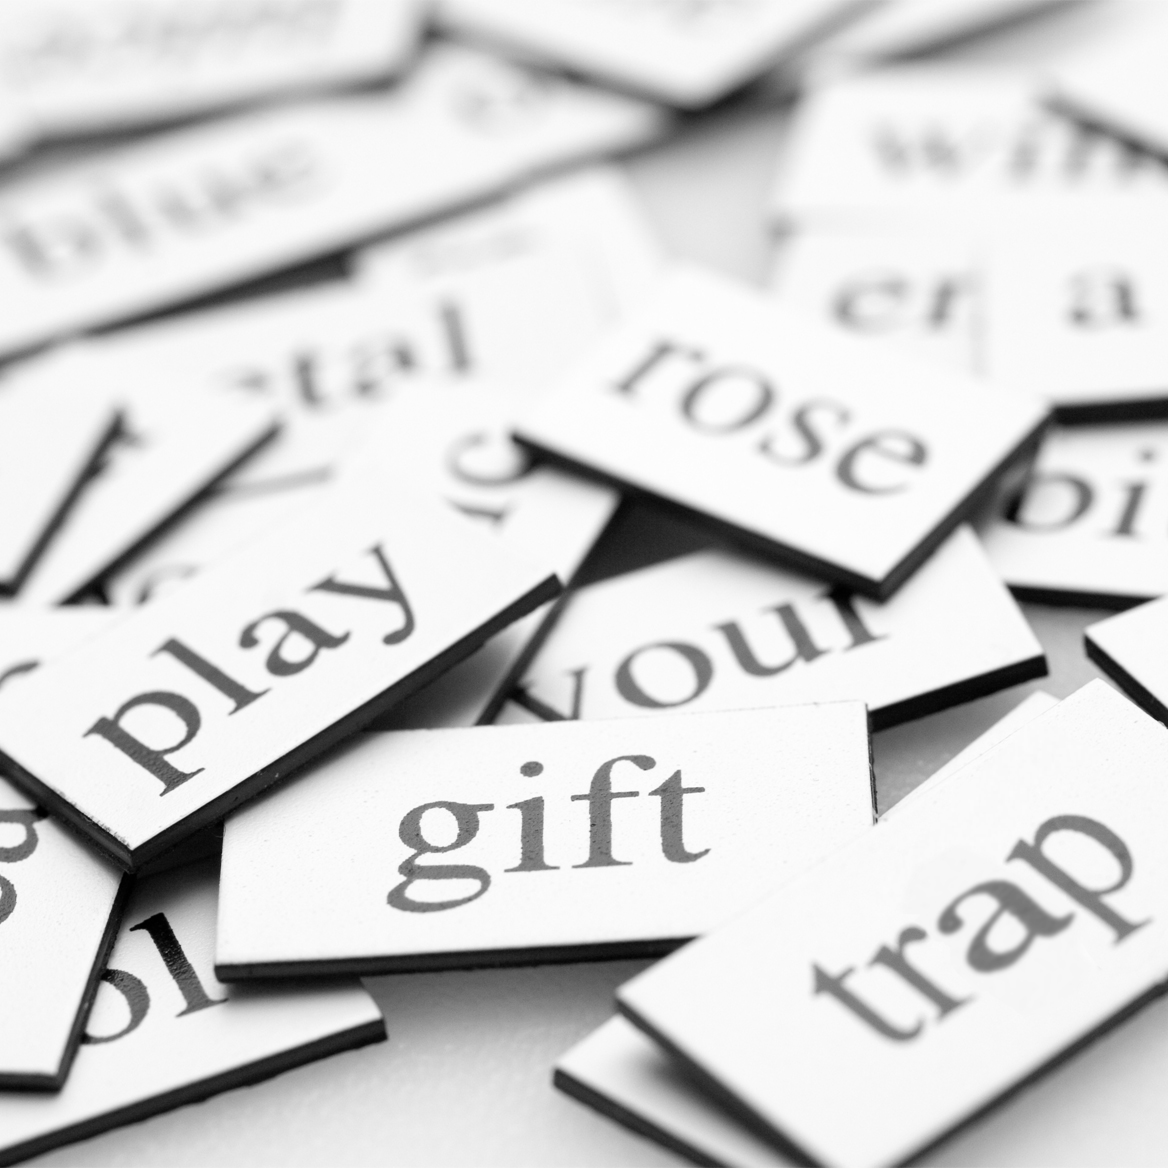 image of magnetic poetry words